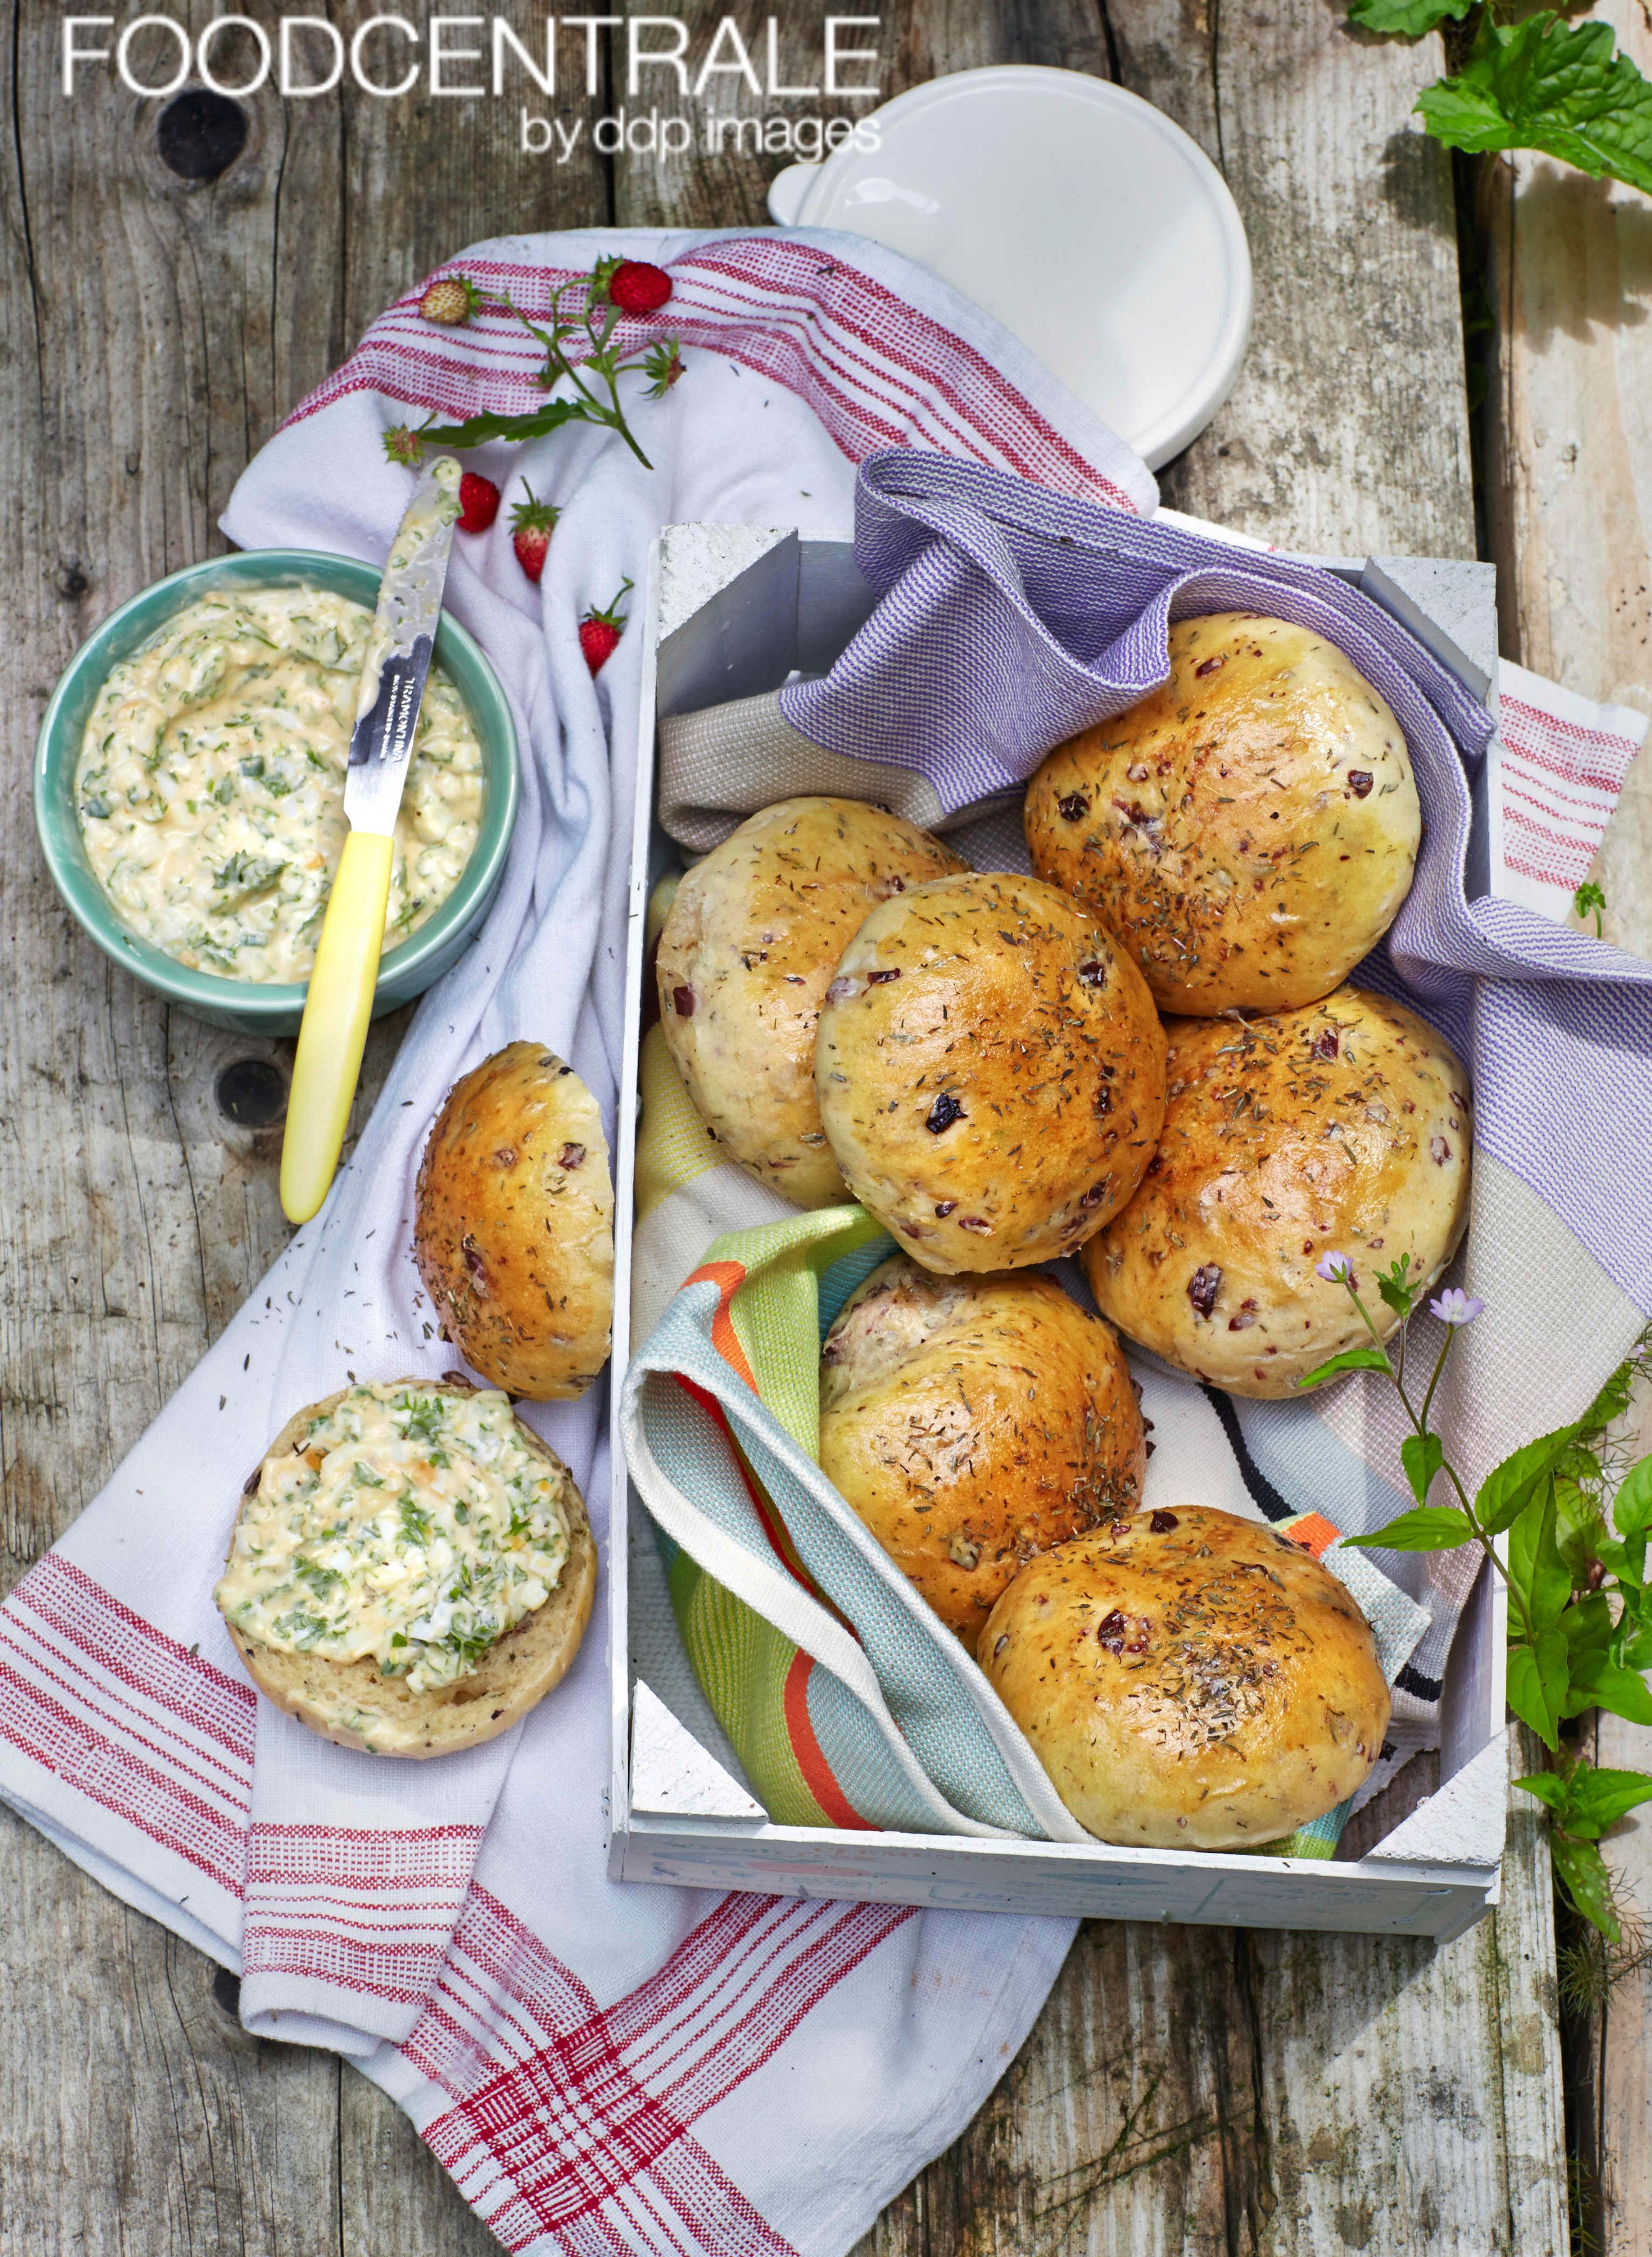 Oliven-Broetchen mit Kraeuter-Ei-Dip, Olive bun with herb egg dip by Julia Hoersch/FoodCentral (00602873). #foodcentrale #ddpimages #ddp #foodpic #foodlove #foodphotography #foodpost #foodinspiration #foodpicoftheday #foodshot #instafood #instafoodie #yummy #yummie #foodiegram #foodstagram #gumo #goodmorning #gutenmorgen #broetchen #dip #bun